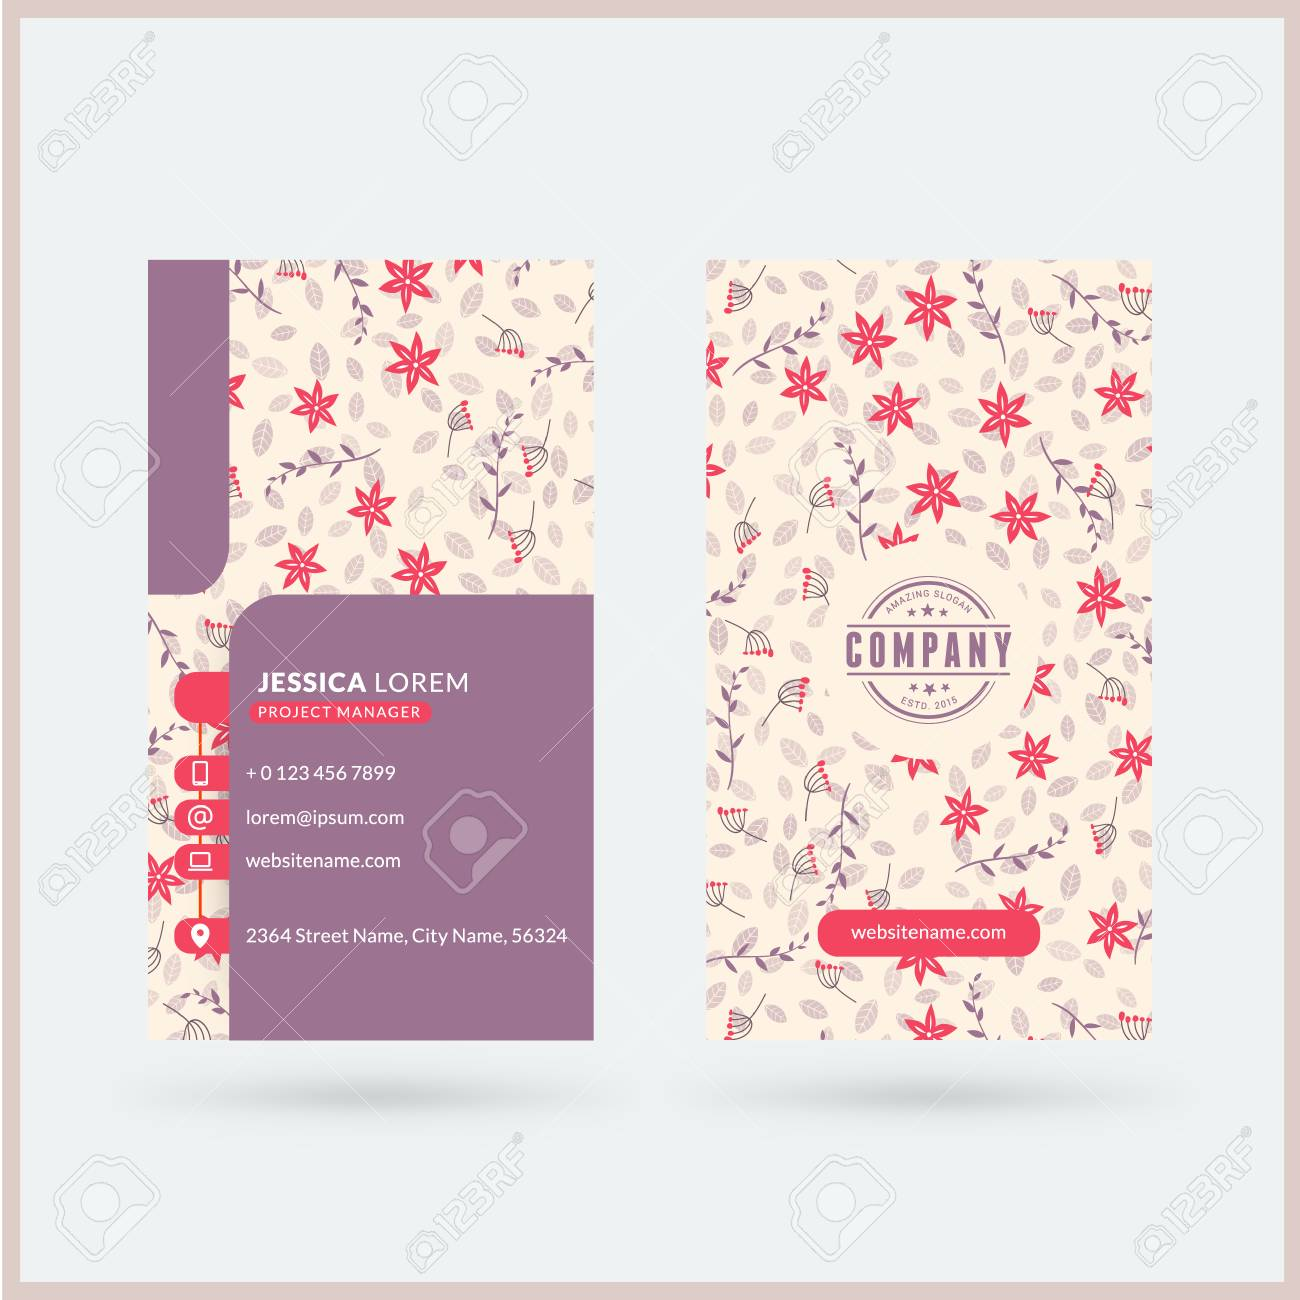 Double Sided Vertical Modern Business Card Template With Cute Floral